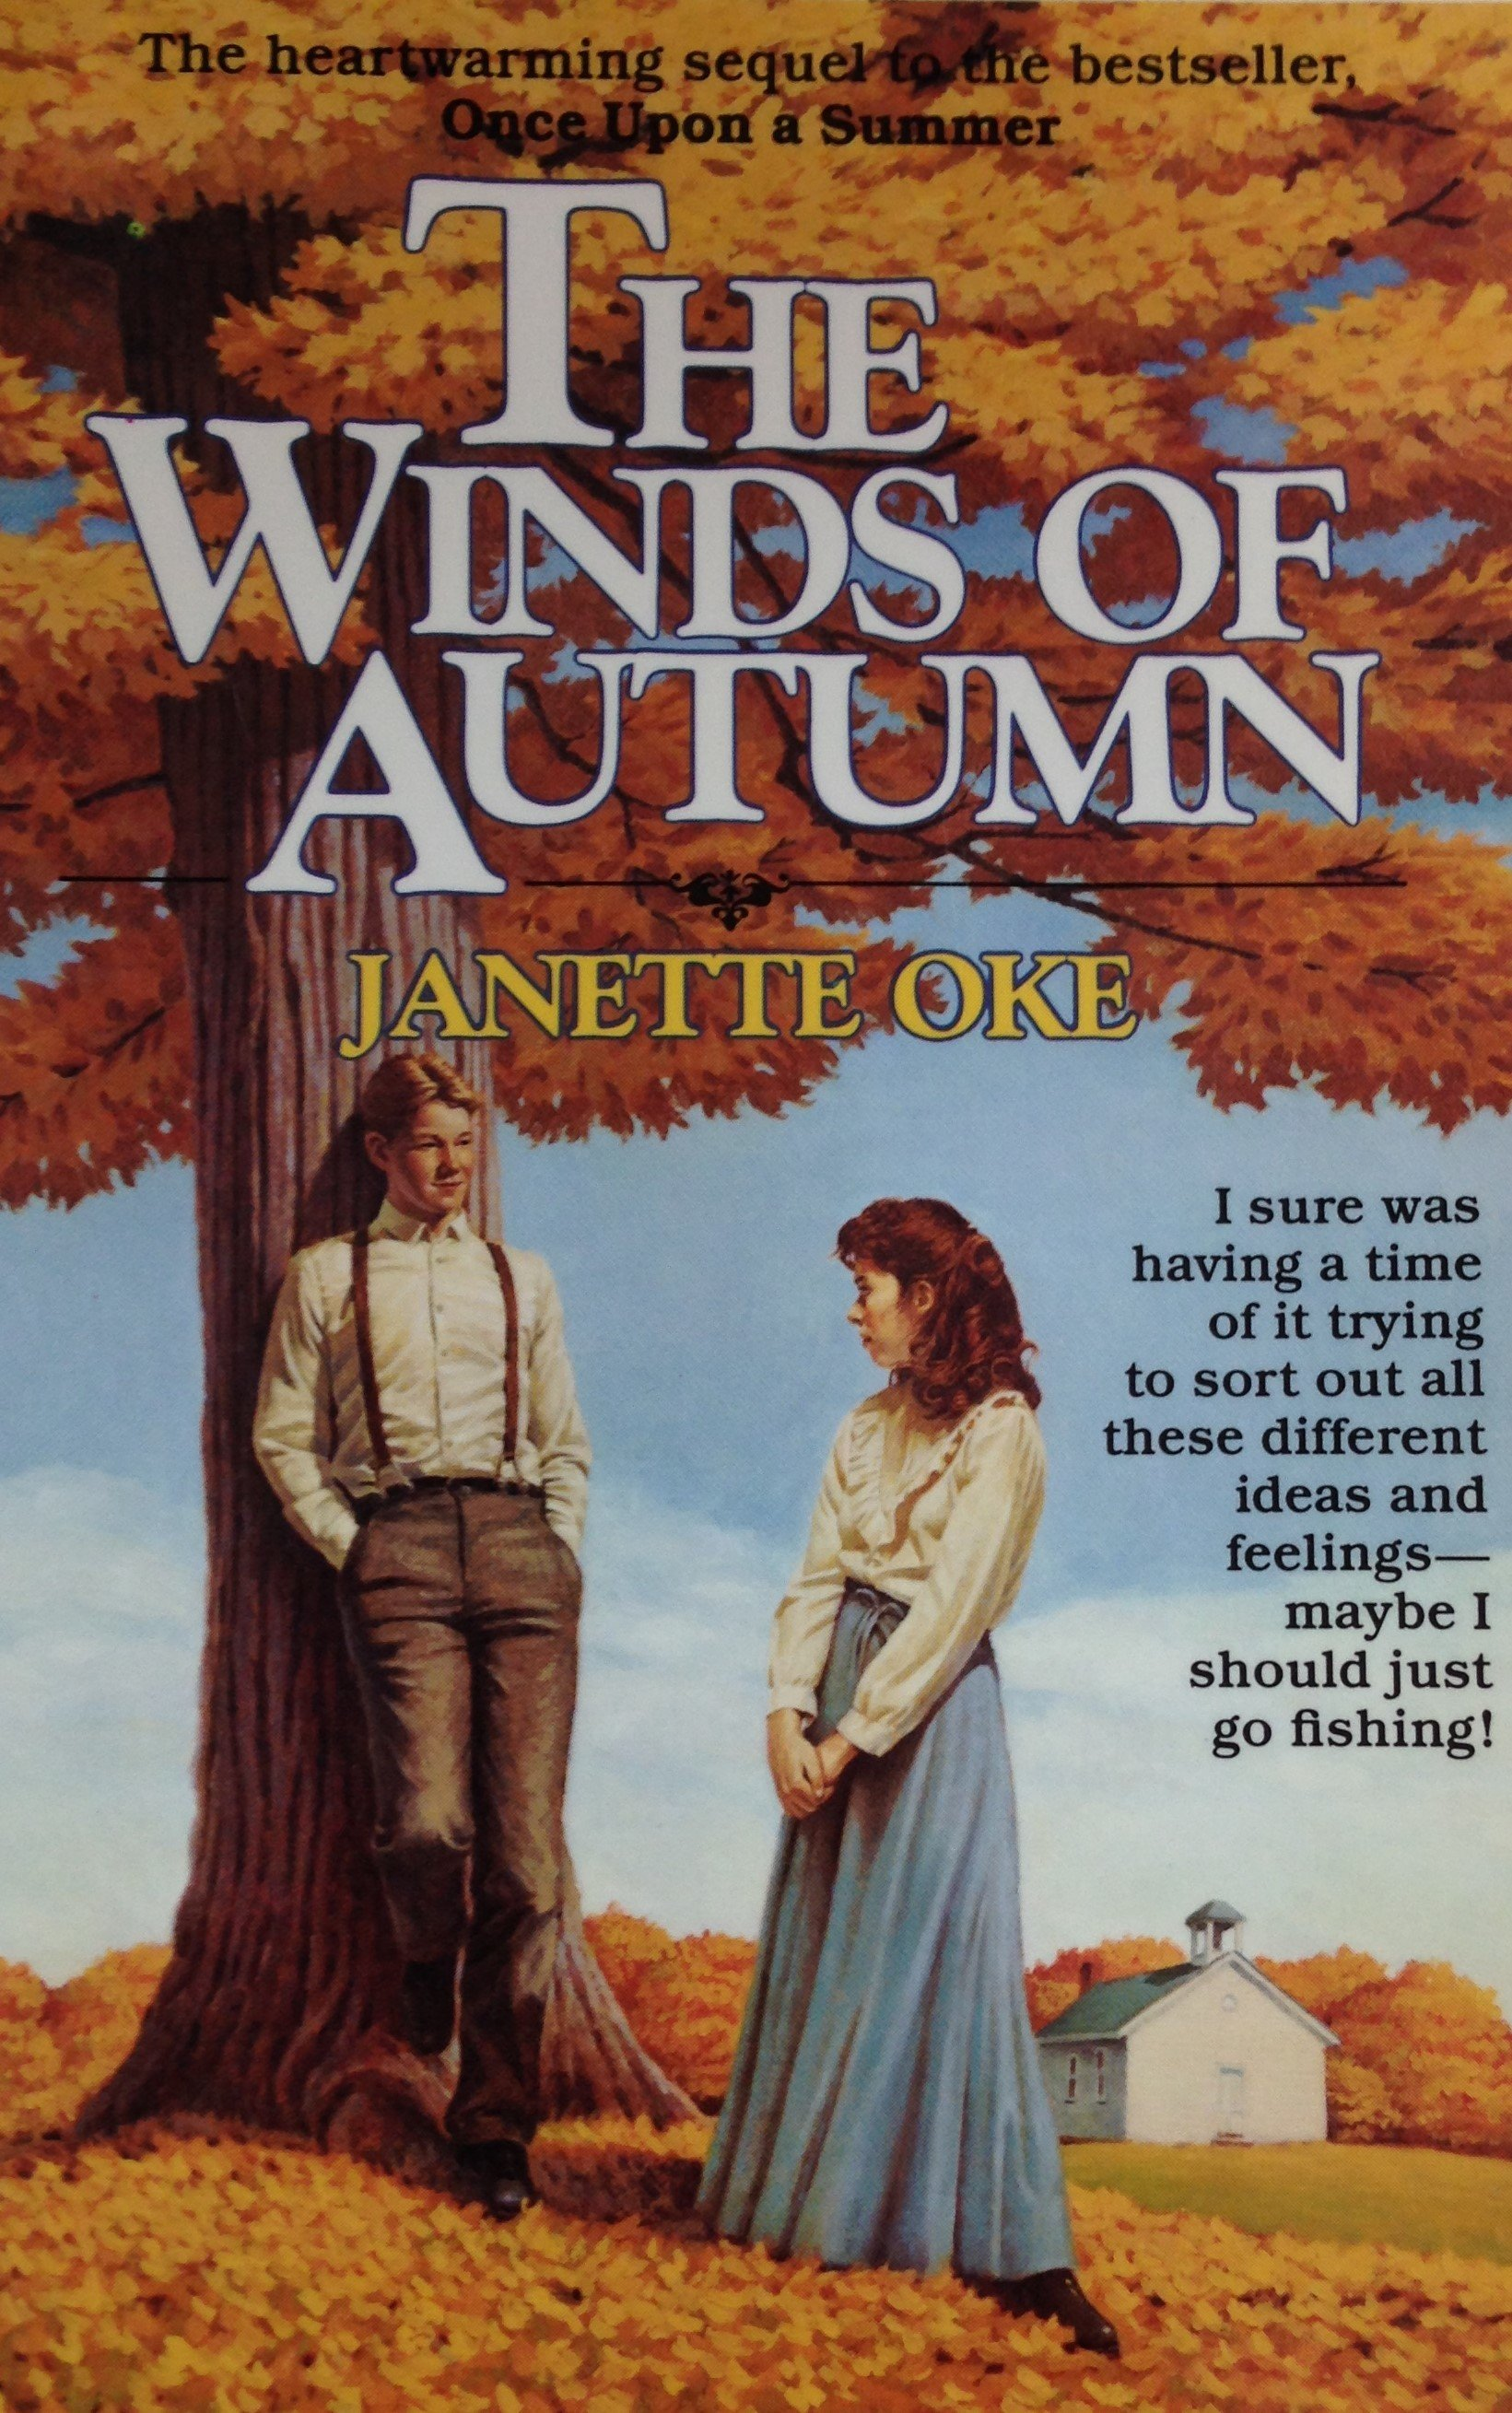 The Winds of Autumn by Janette Oke 00124